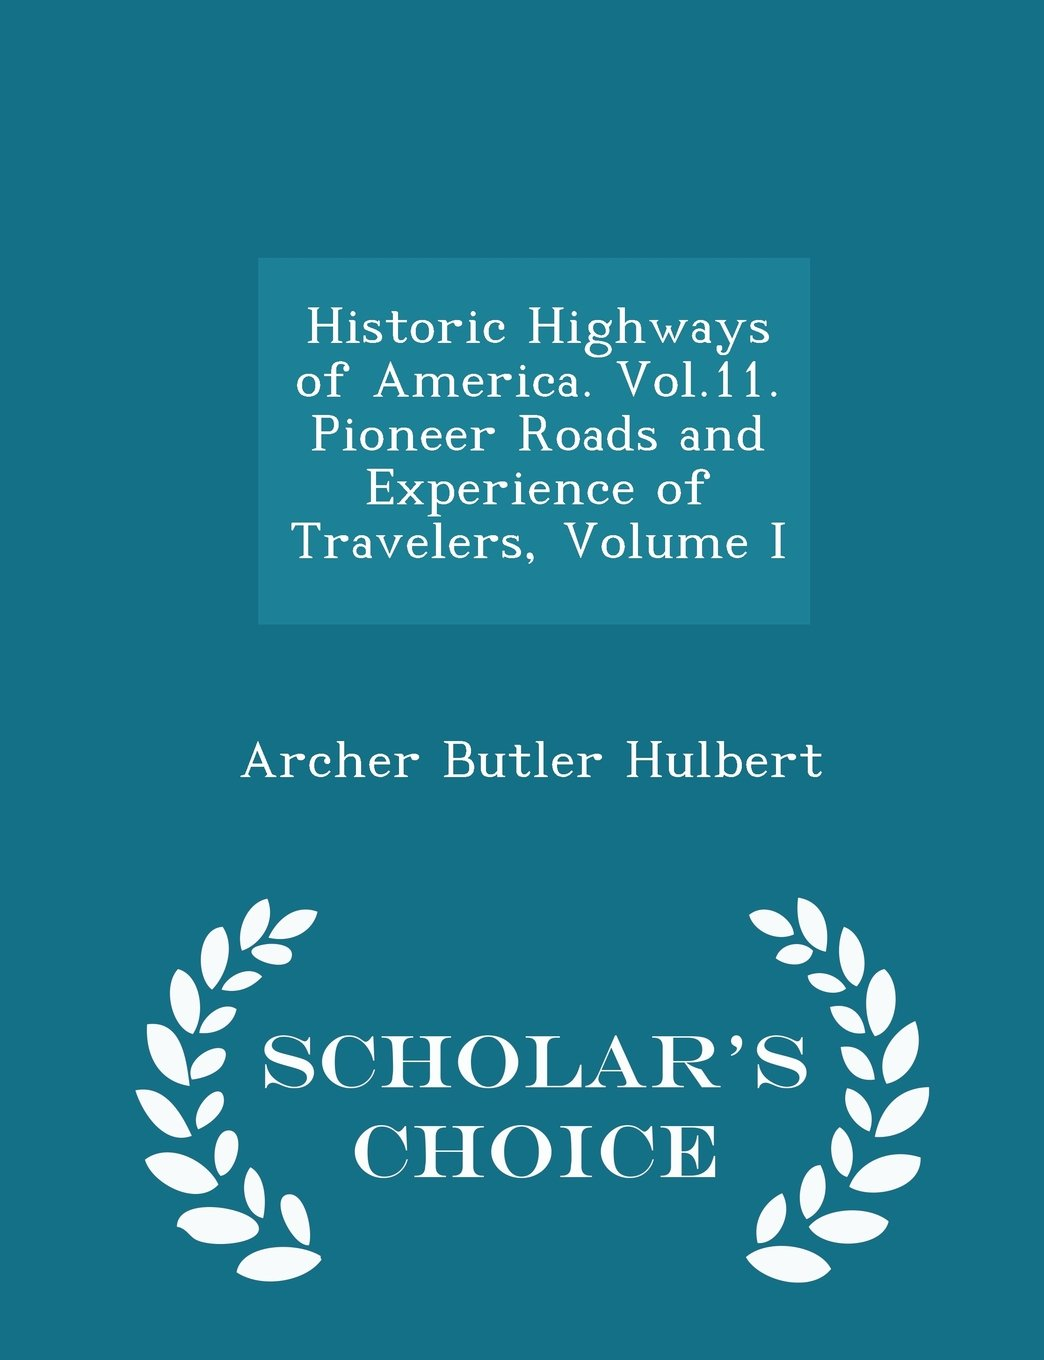 Historic Highways of America: Pioneer Roads and Experiences of Travelers